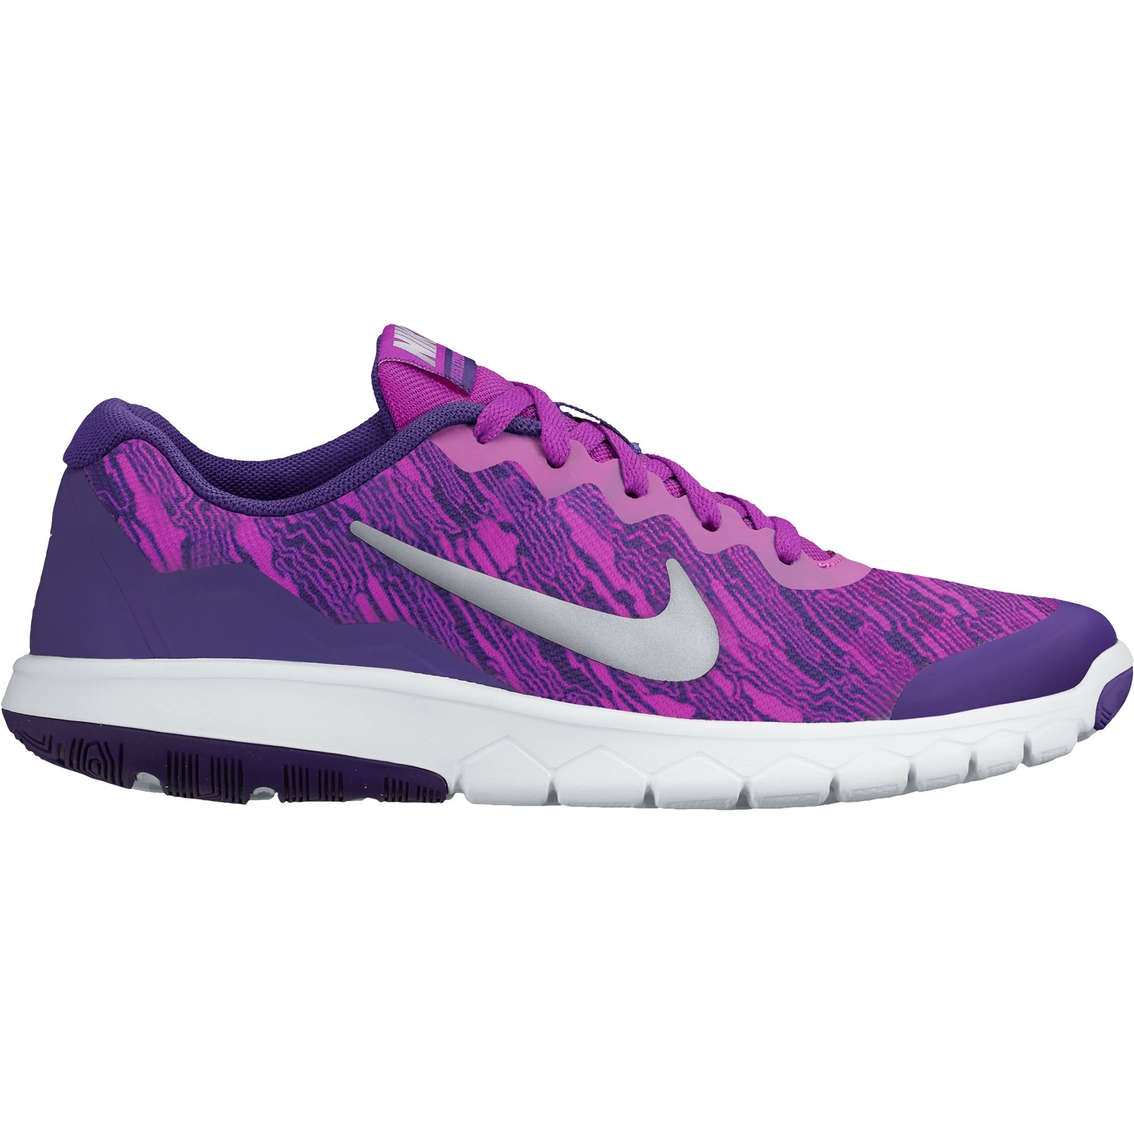 quality design 18b51 47102 Nike Girls Flex Experience 4 Running Shoes